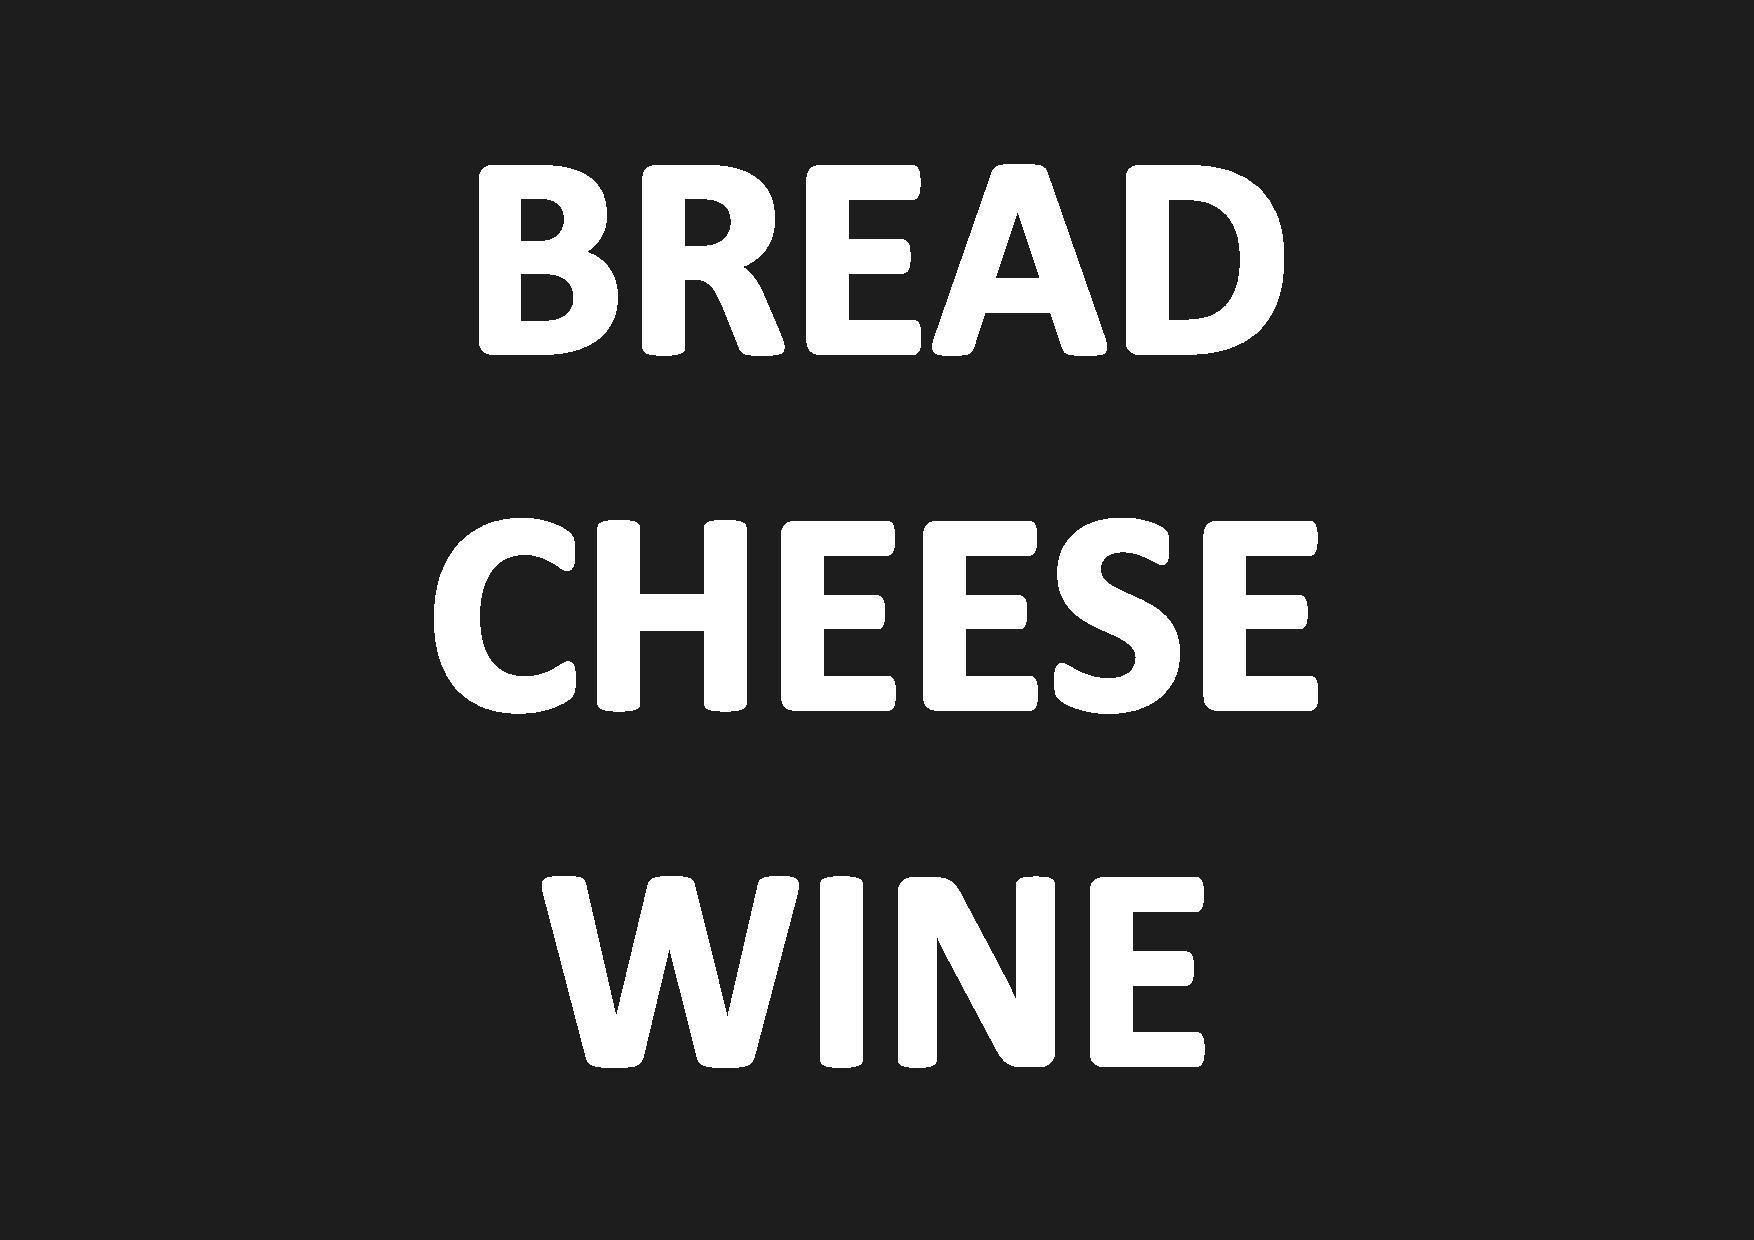 BREAD CHEESE WINE - COASTAL THEME - THURSSDAY 26TH MARCH